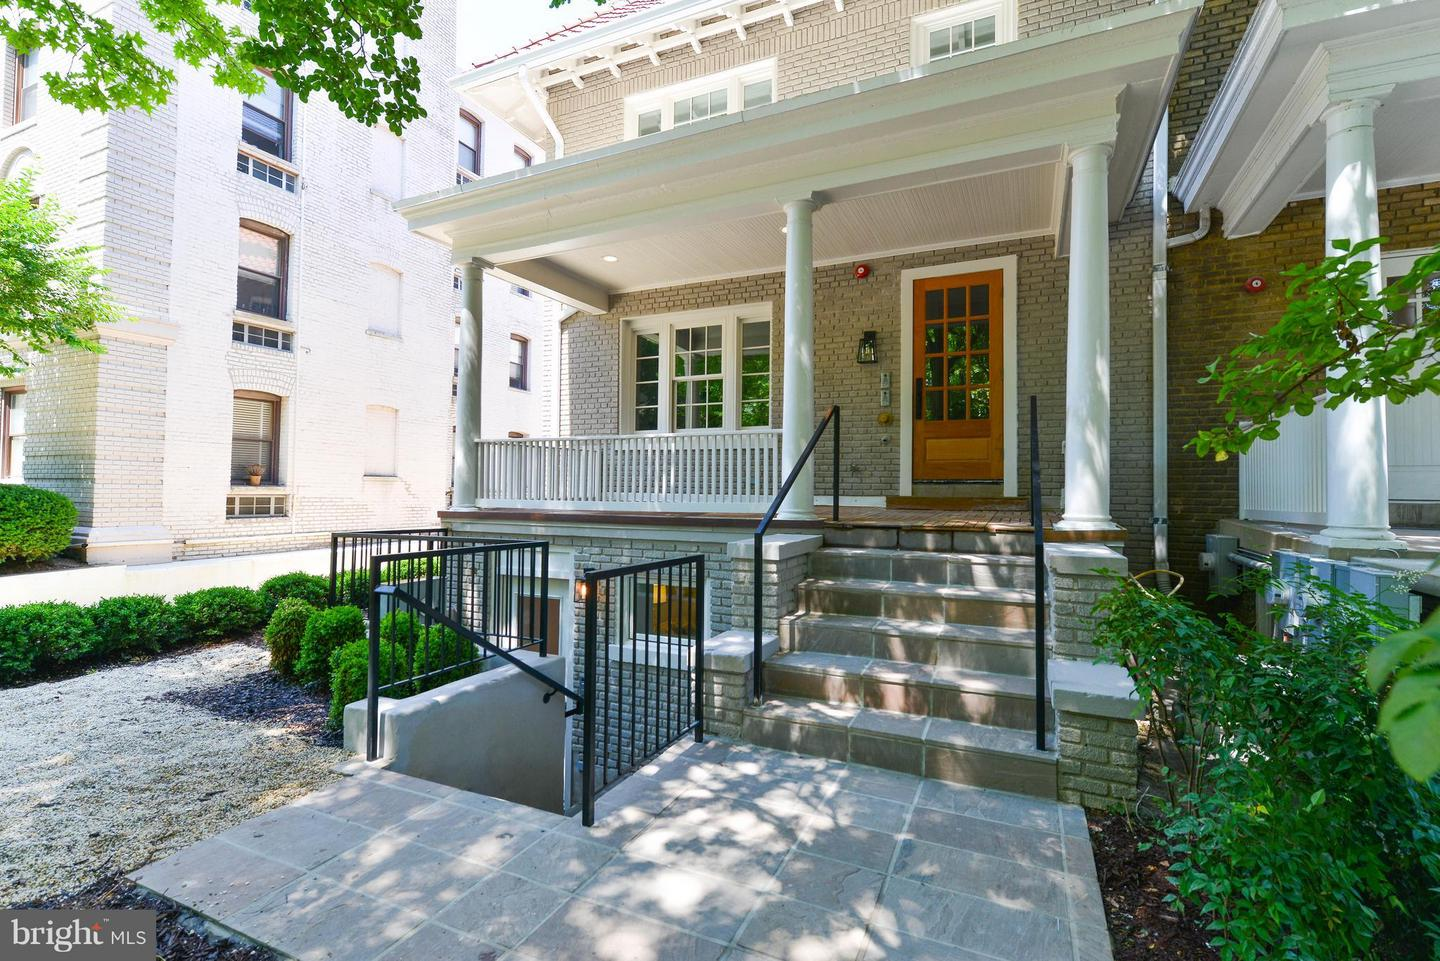 Multi-Family Home for Sale at 2312 Ashmead Pl Nw 2312 Ashmead Pl Nw Washington, District Of Columbia 20009 United States